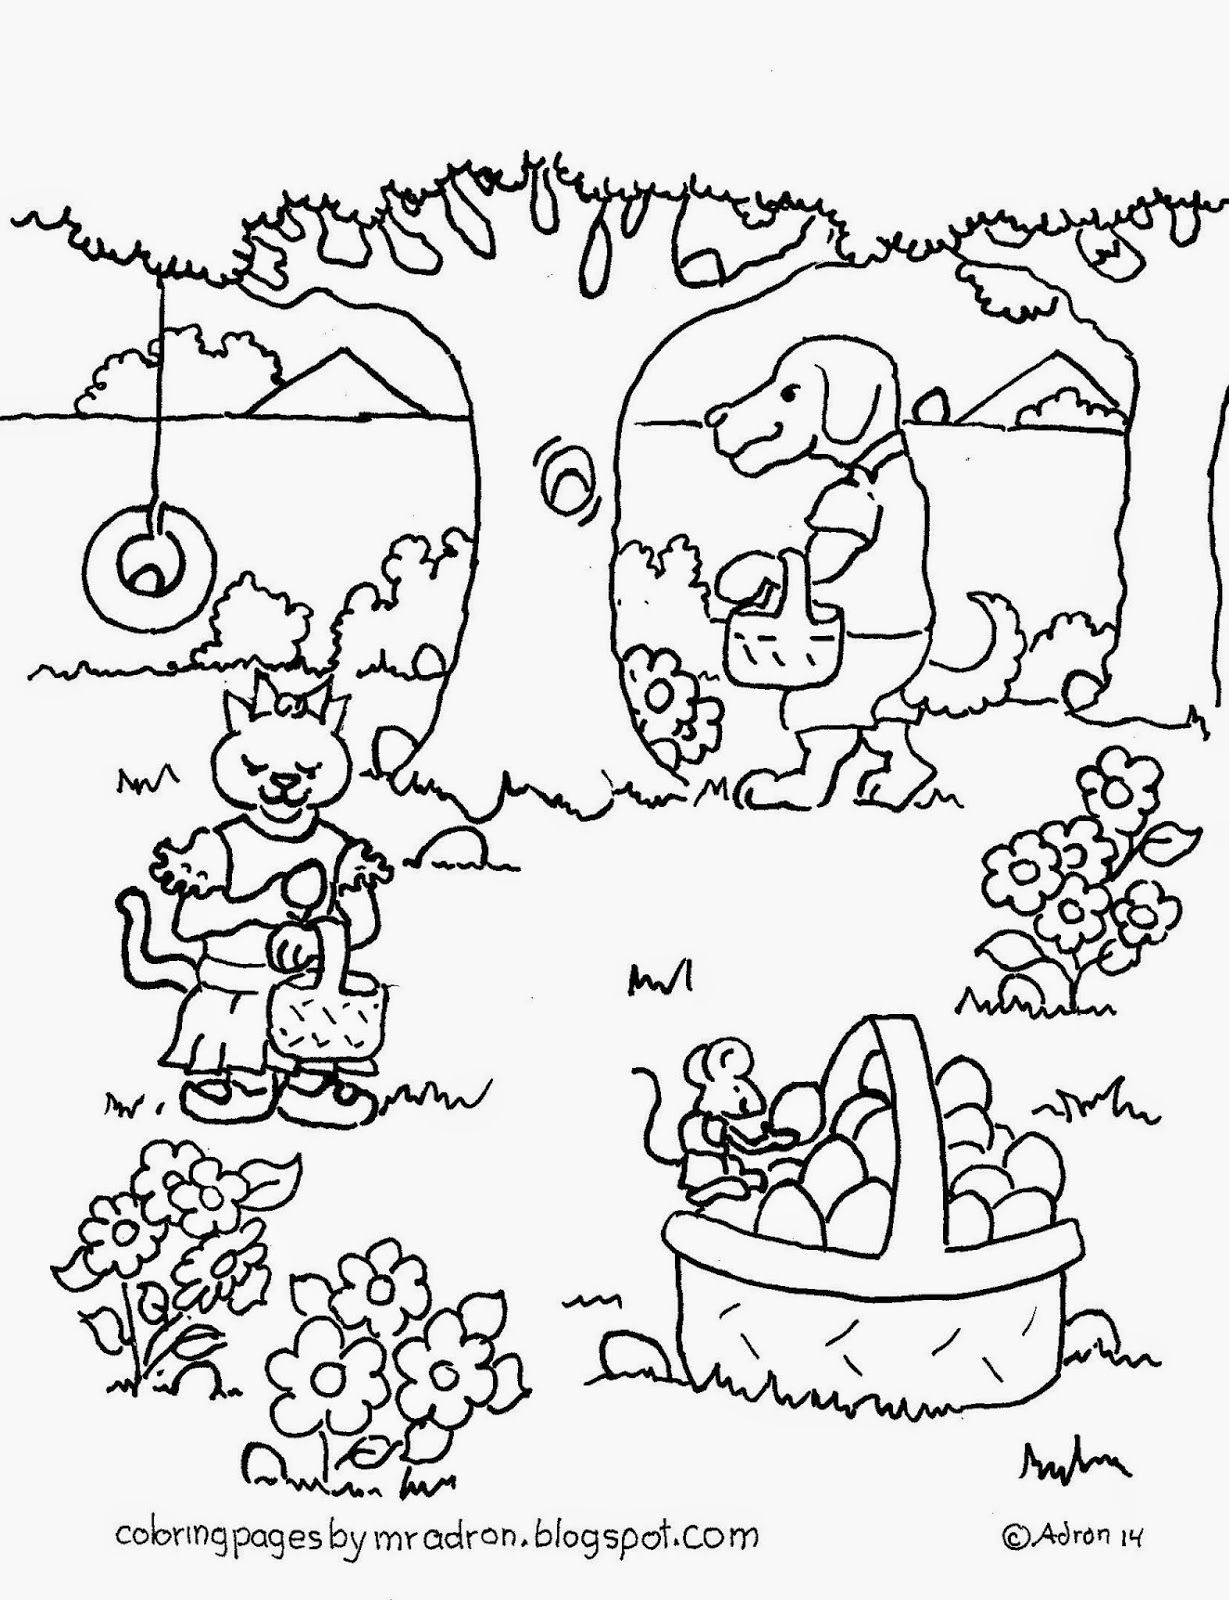 Easter Egg Hunt Coloring Page See More At My Blog Http Coloringpagesbymradron Blogspot Com Animal Easter Eggs Coloring Pages Easter Egg Hunt